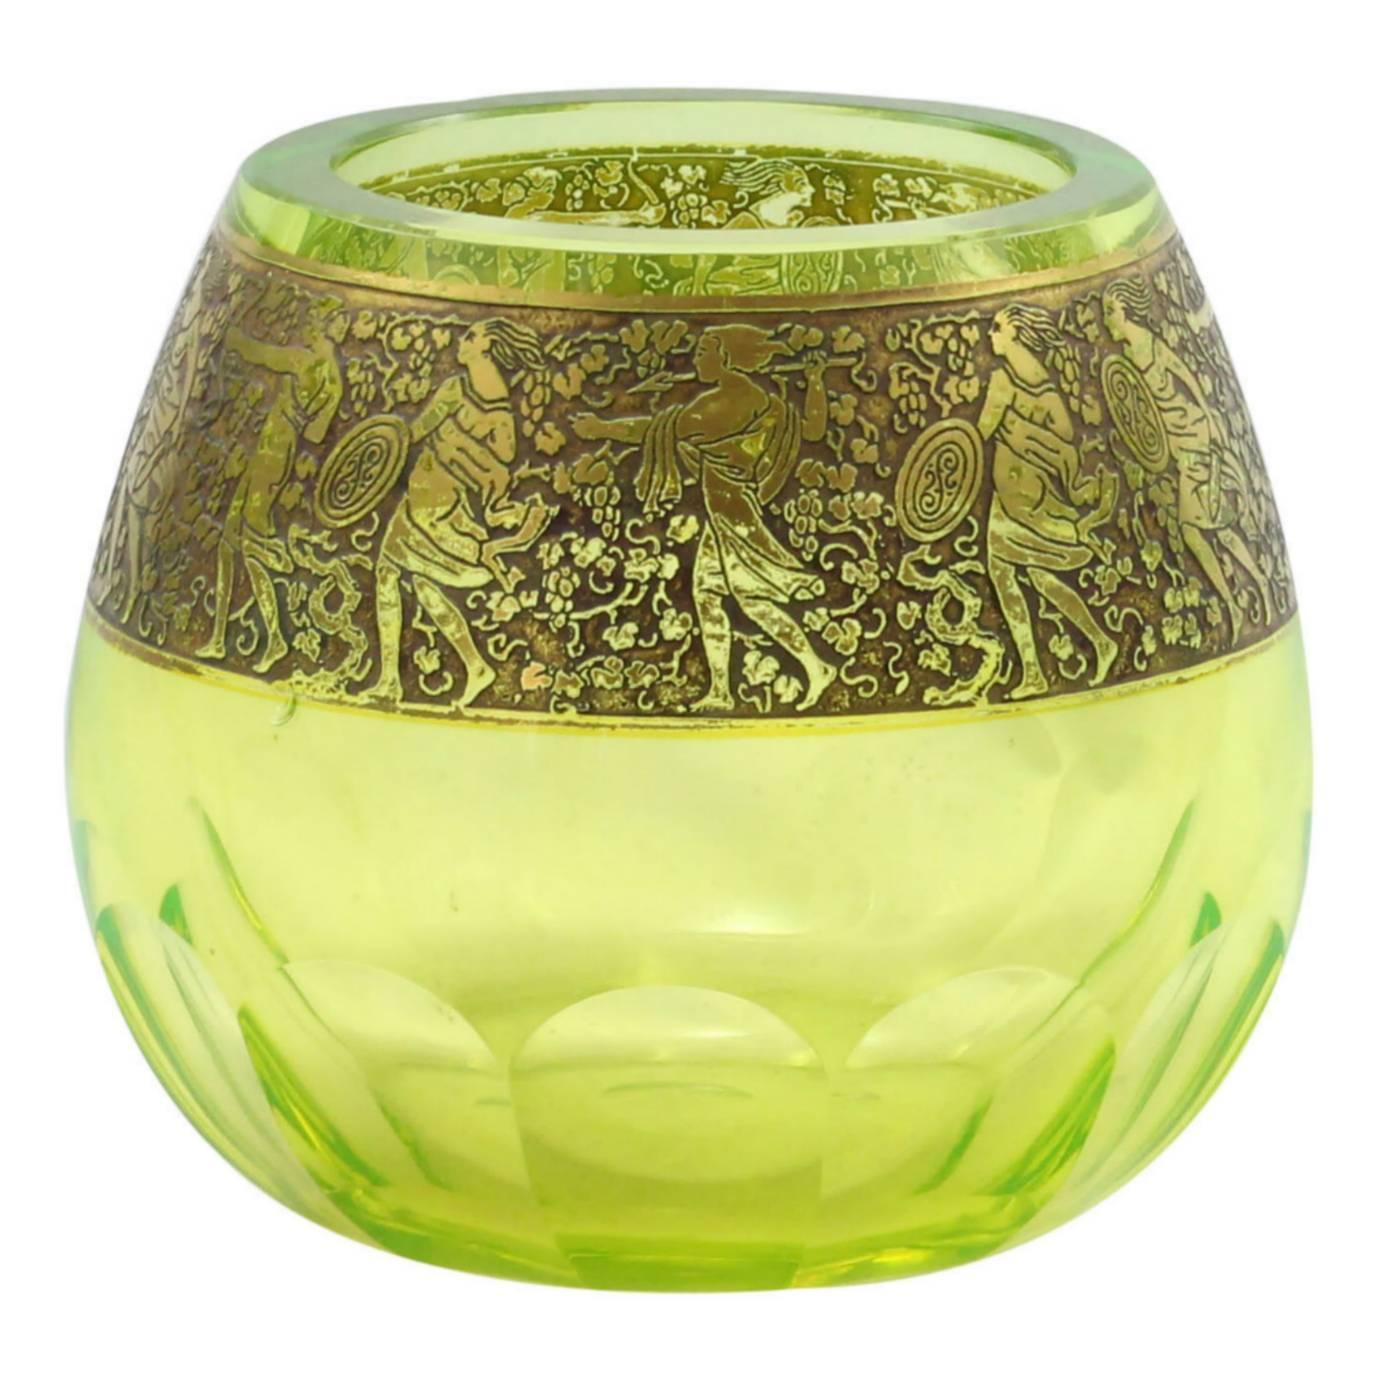 Moser glassworks furniture 22 for sale at 1stdibs art deco uranium glass vase with gold frieze by moser reviewsmspy